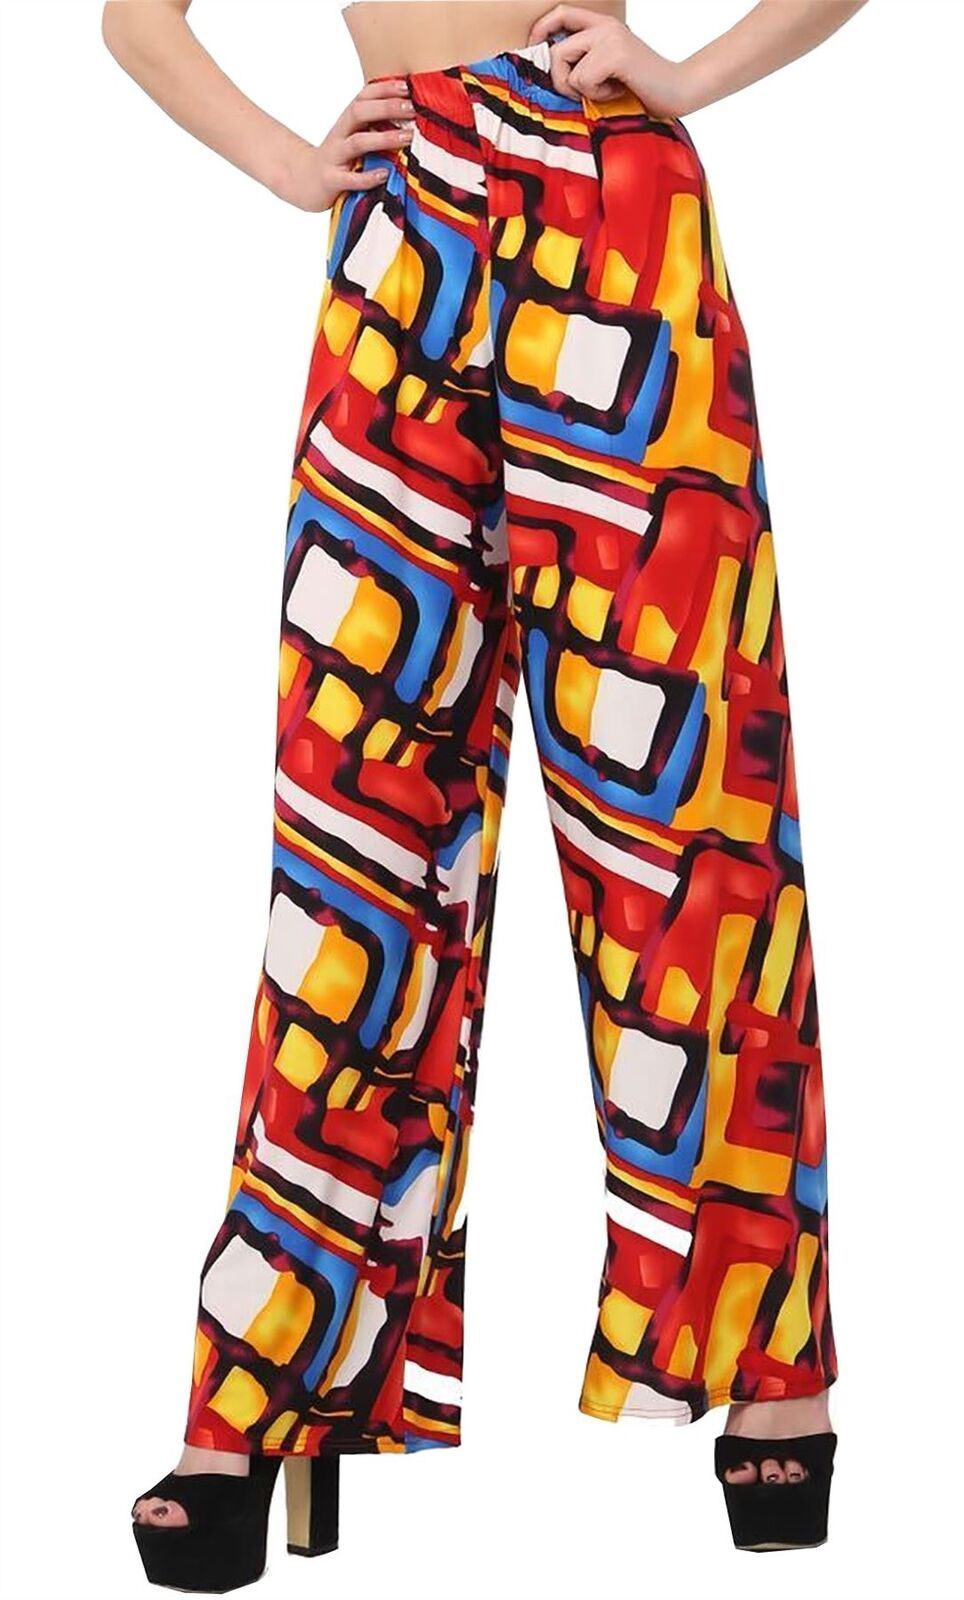 New-Ladies-Floral-Printed-Wide-Leg-Flared-Parallel-Baggy-Trousers-Pants-Palazzo thumbnail 35